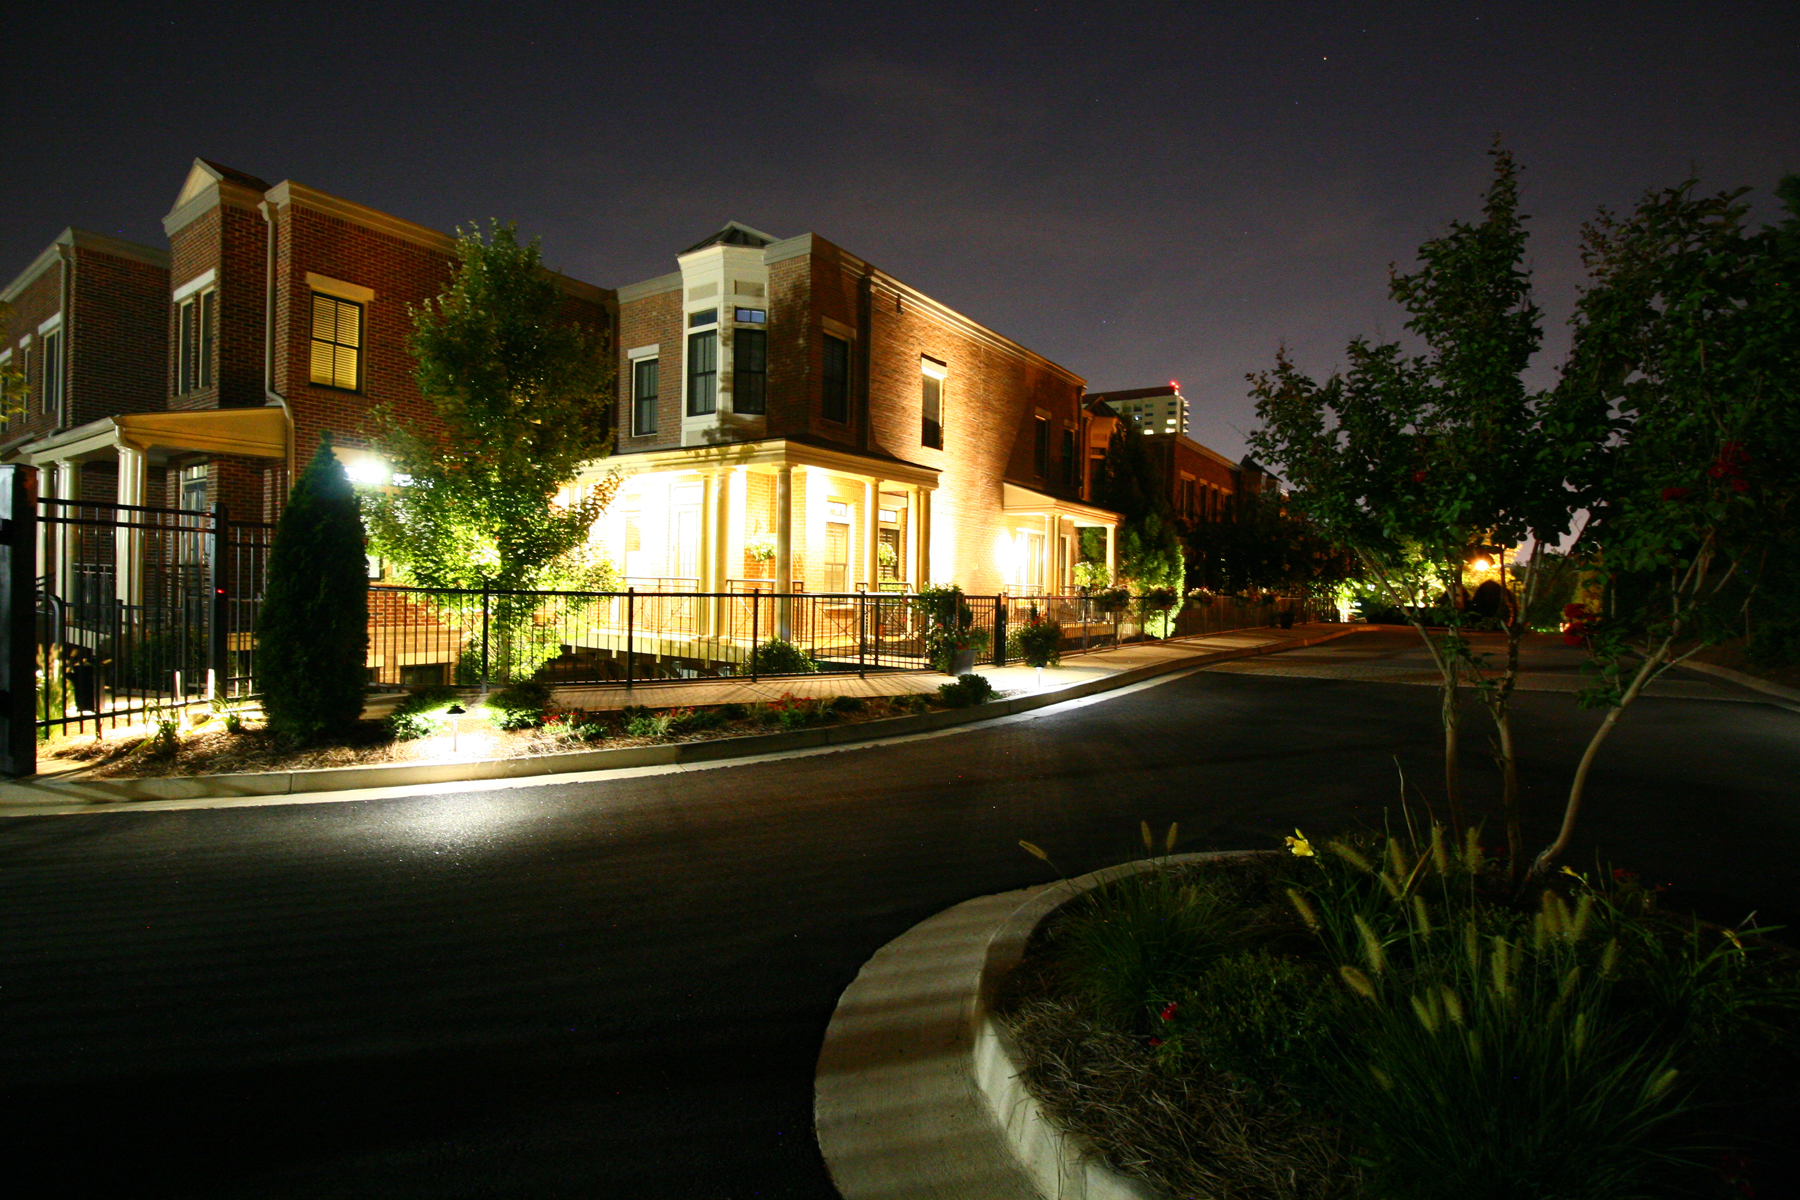 Residência urbana para Venda às Outstanding Townhome In The Best Perimeter/Dunwoody Location 4664 Magnolia Commons Dunwoody, Geórgia, 30338 Estados Unidos